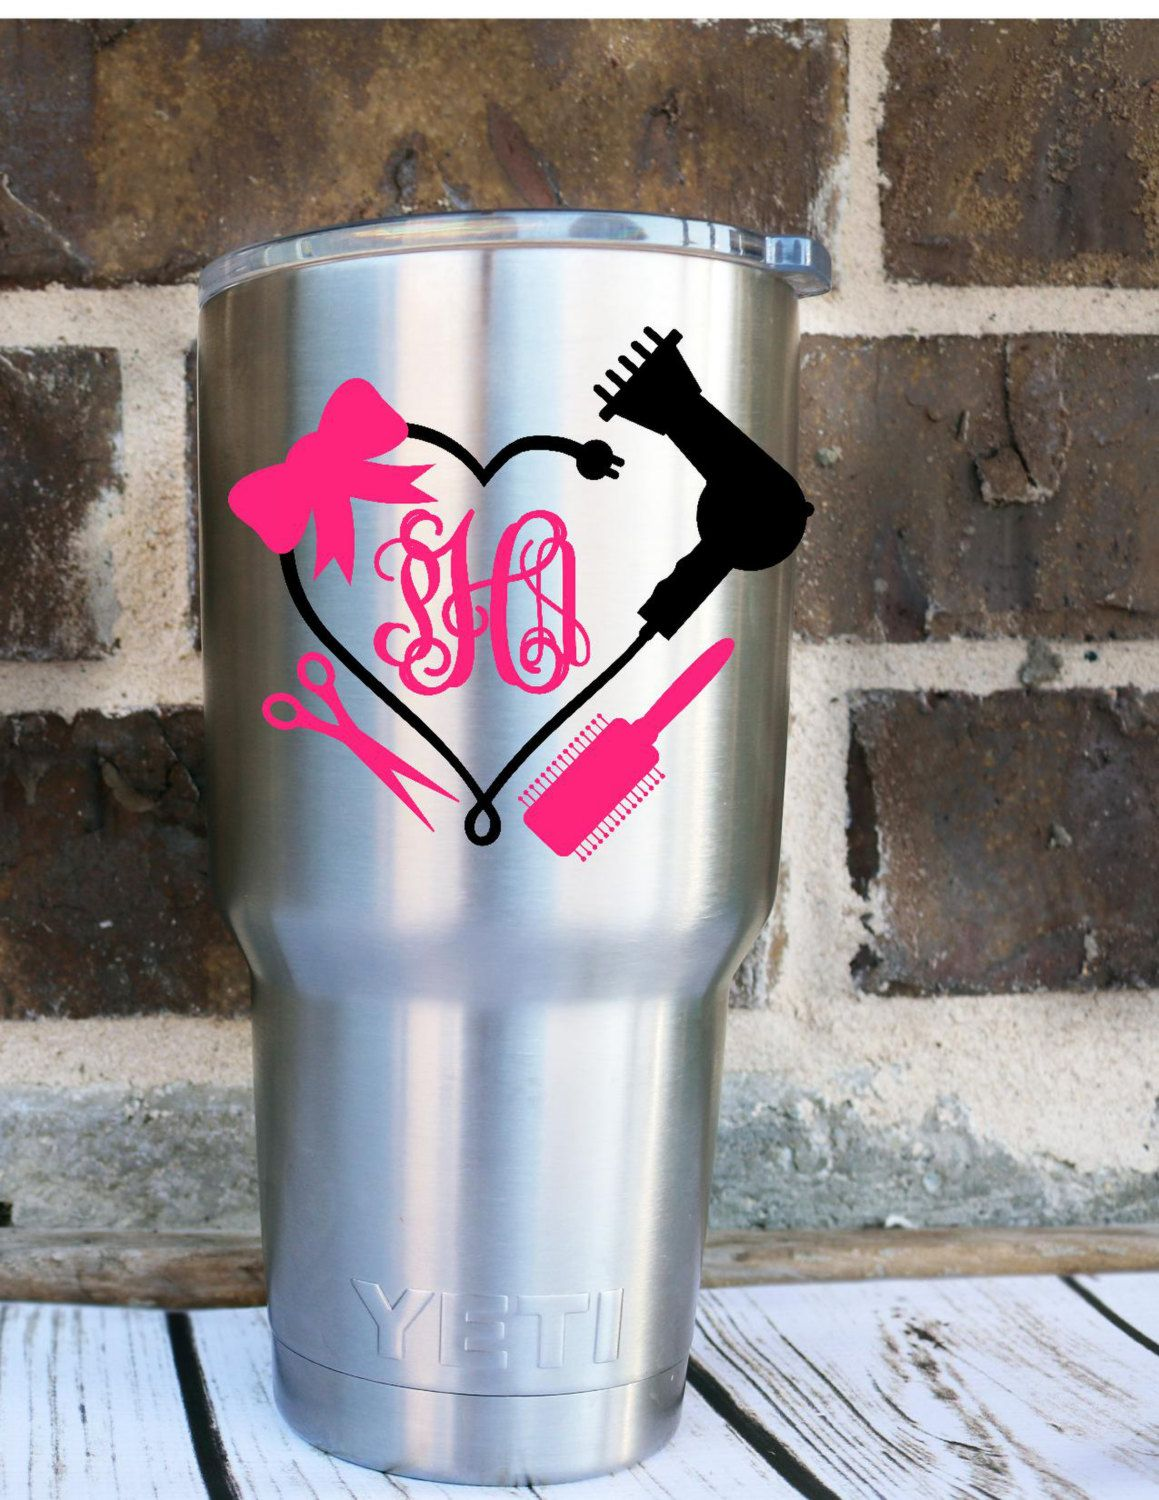 Blowdryer Monogram Decal Hairstylist Decal Cosmotology Decal - Hair stylist custom vinyl decals for car